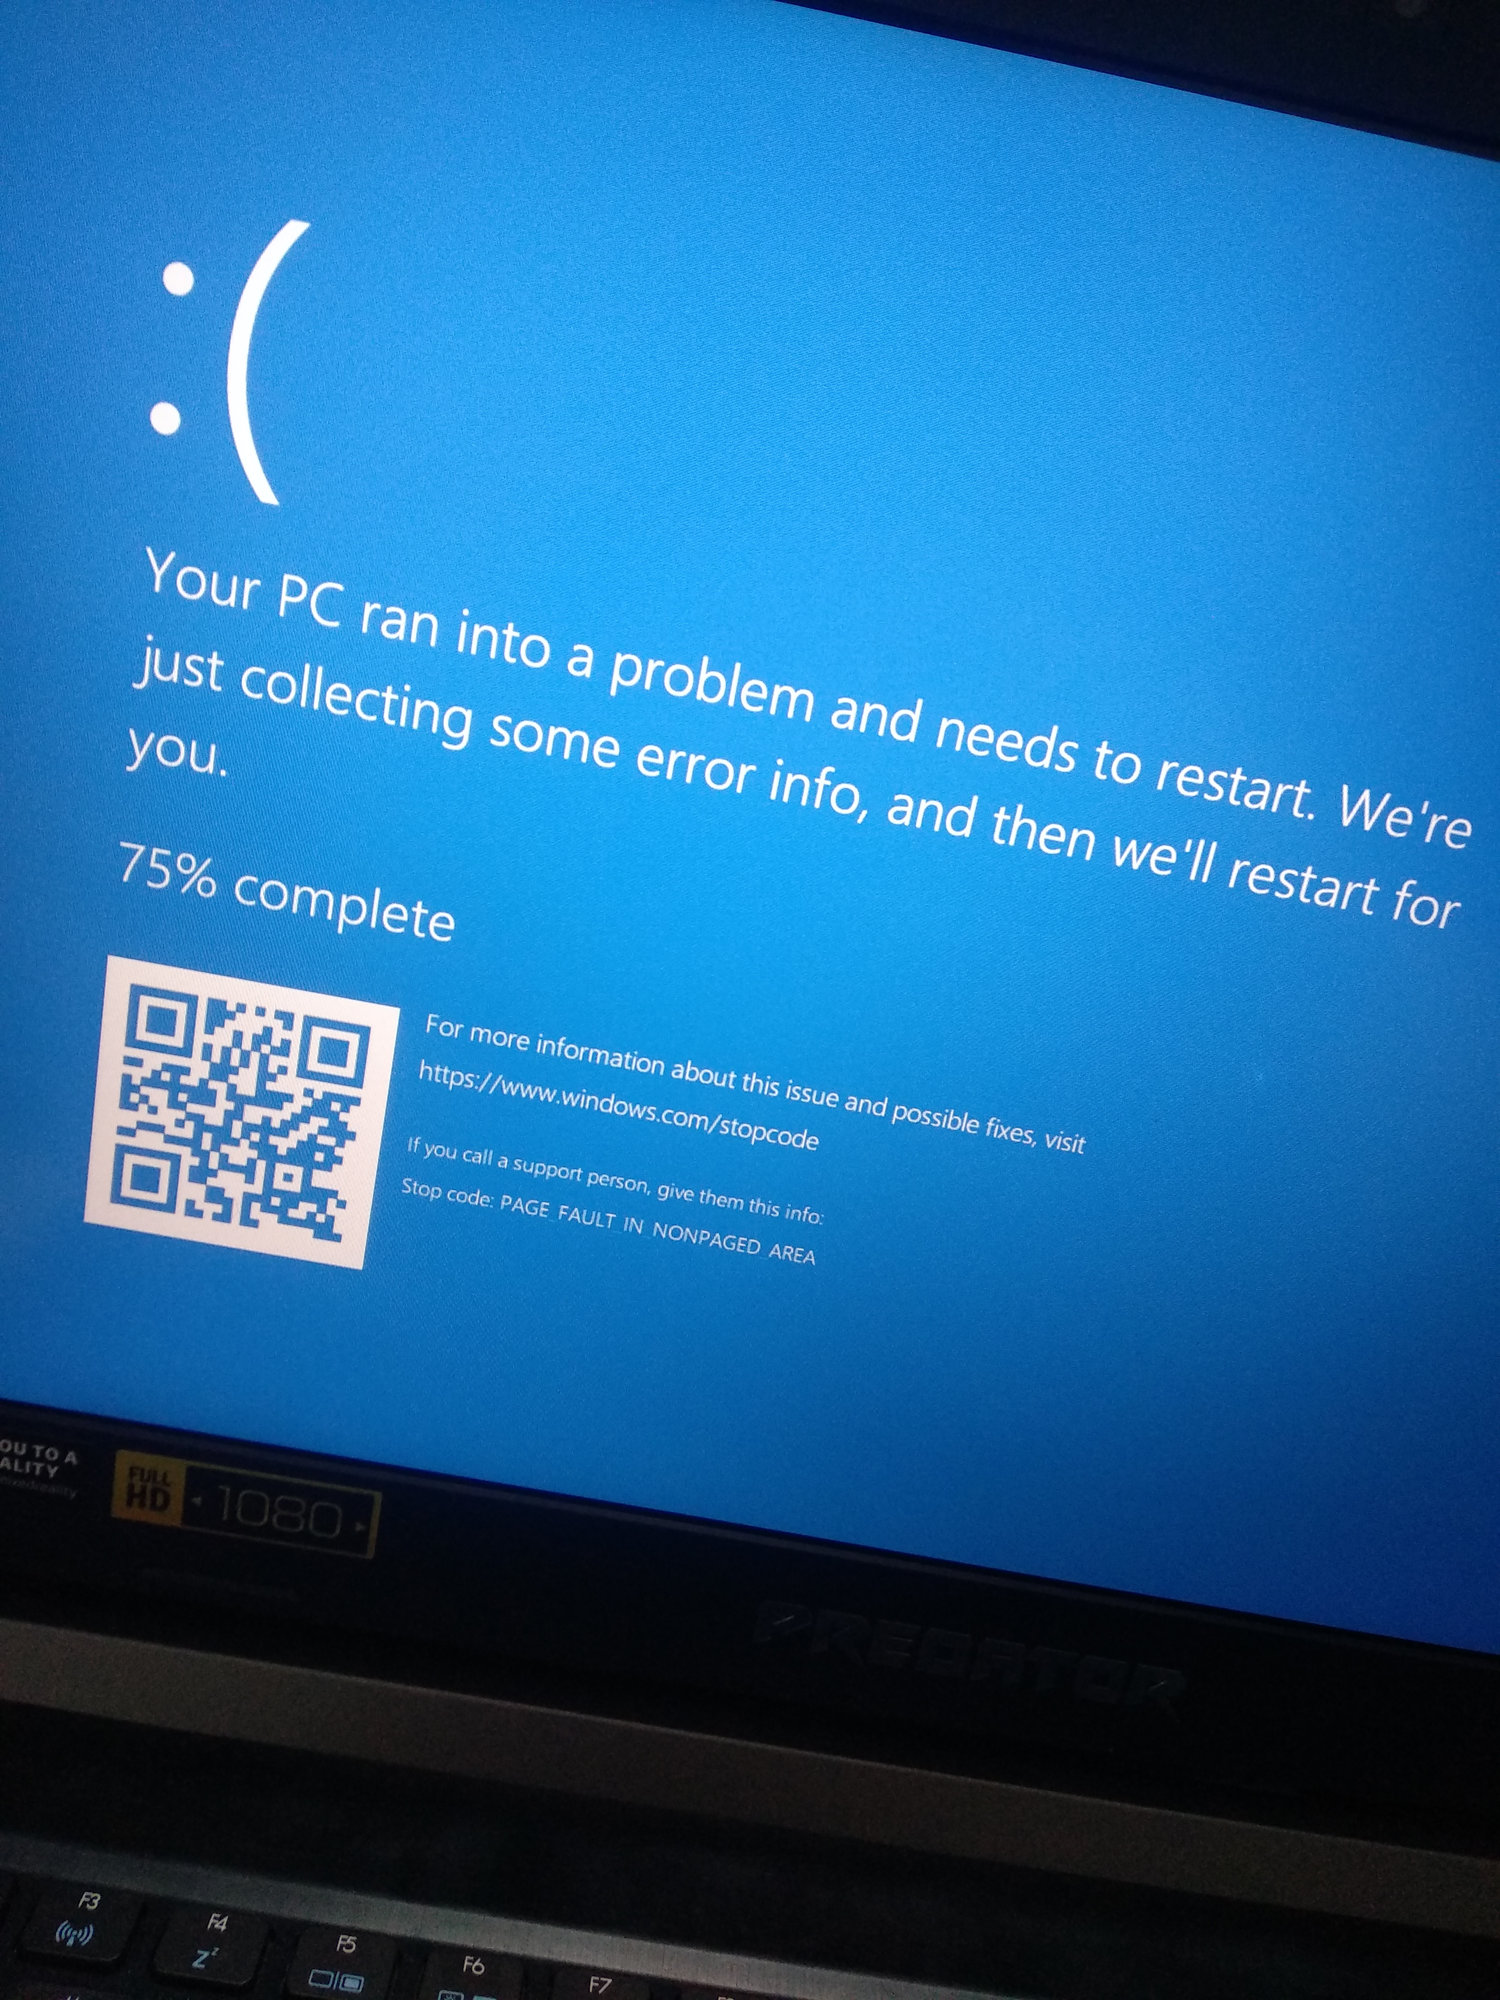 How can I restart my laptop if it hangs